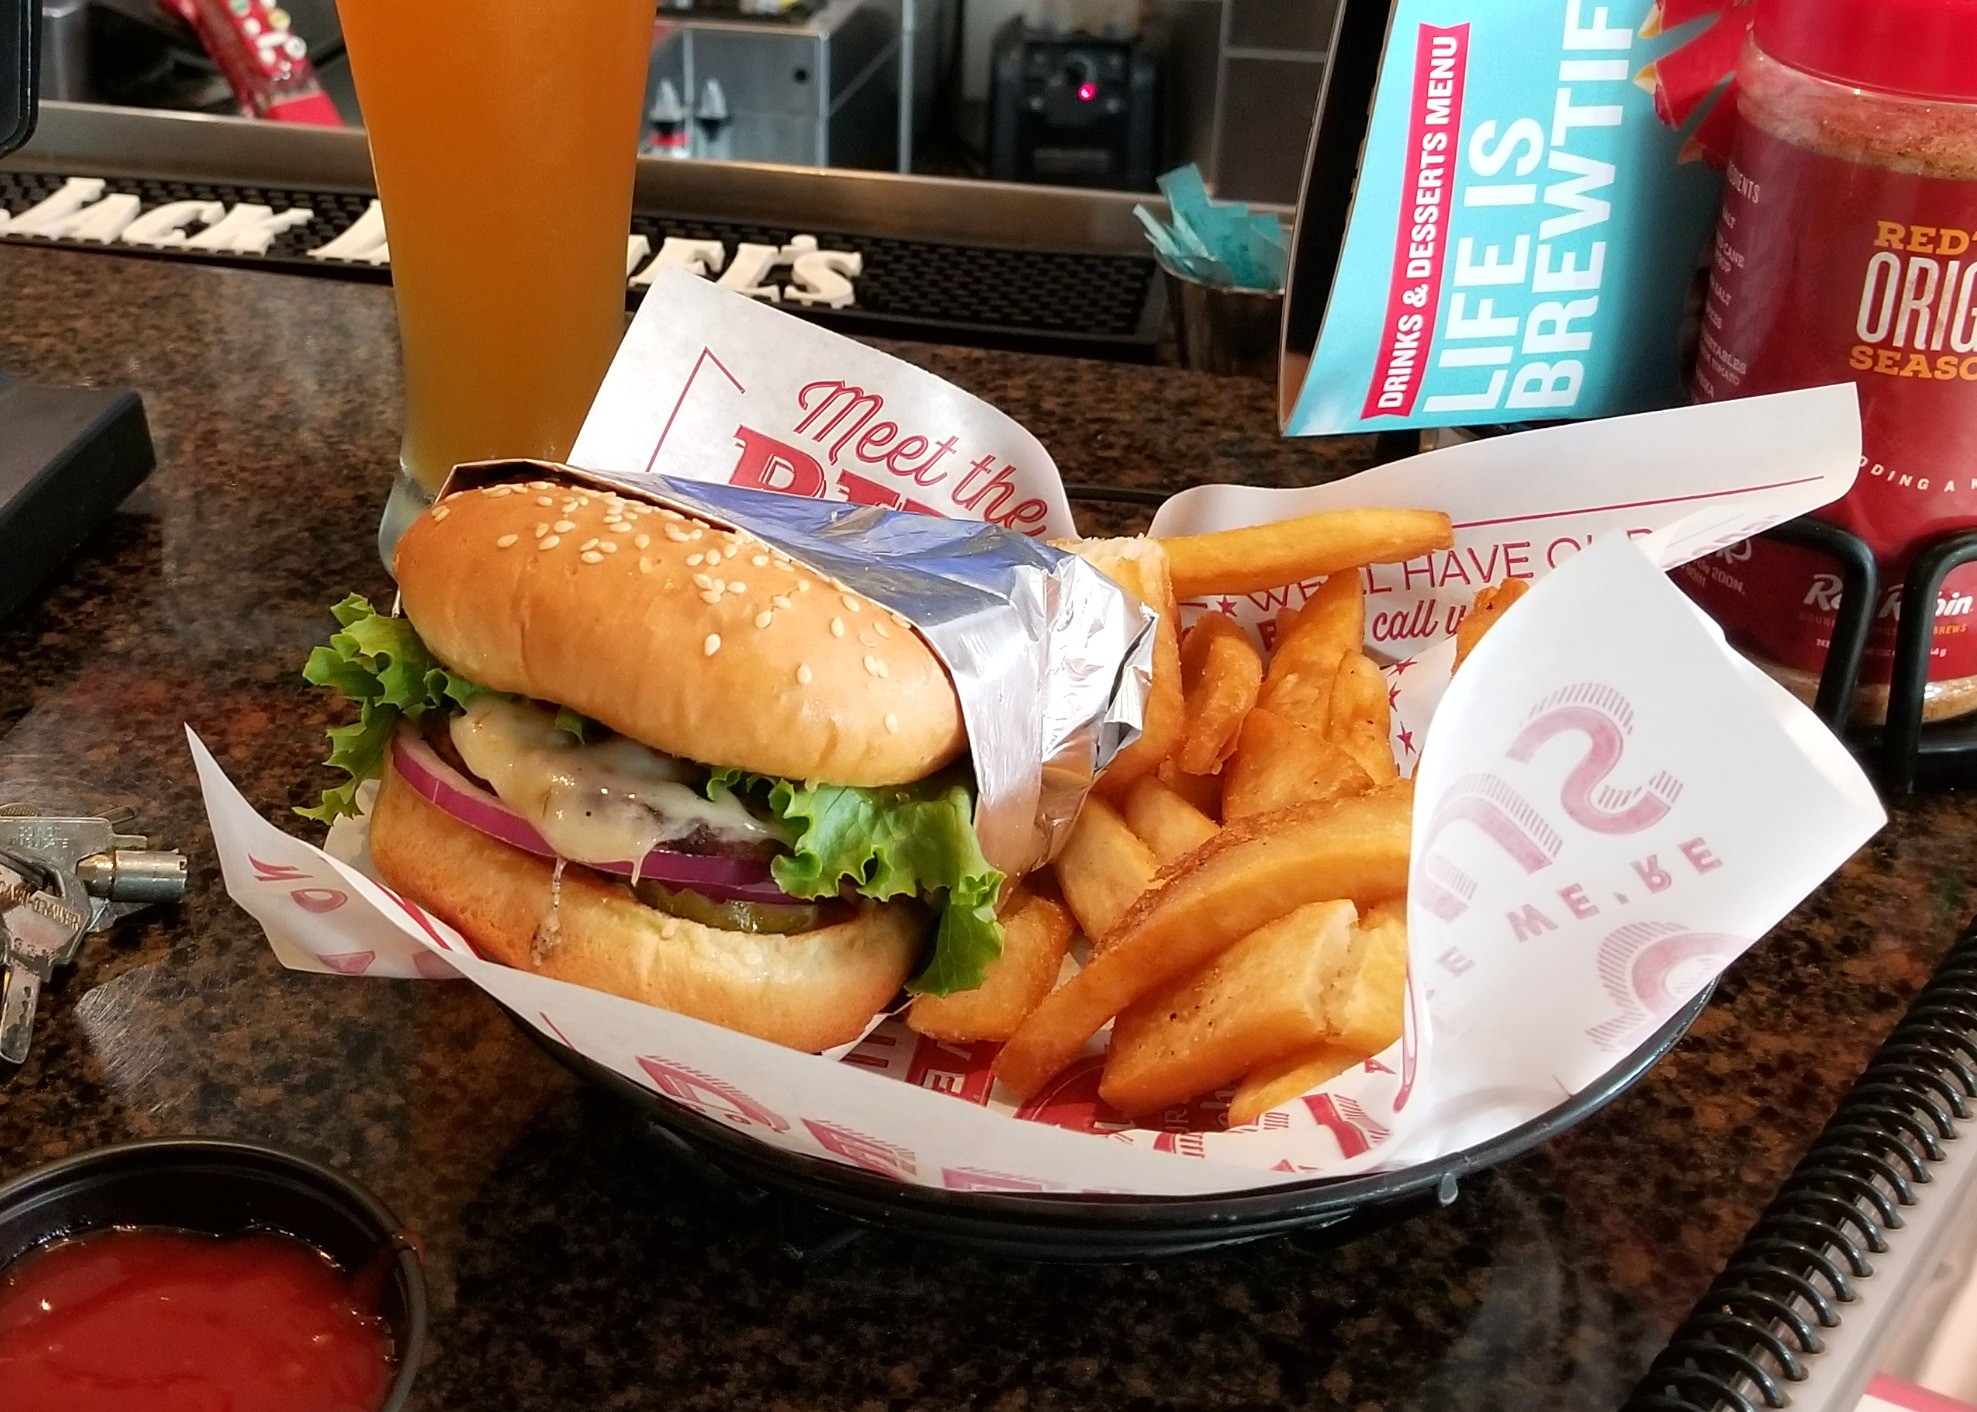 picture regarding Red Robin Printable Coupons referred to as 29 Crimson Robin Insider secrets Each Burger Associate Really should Realize - The